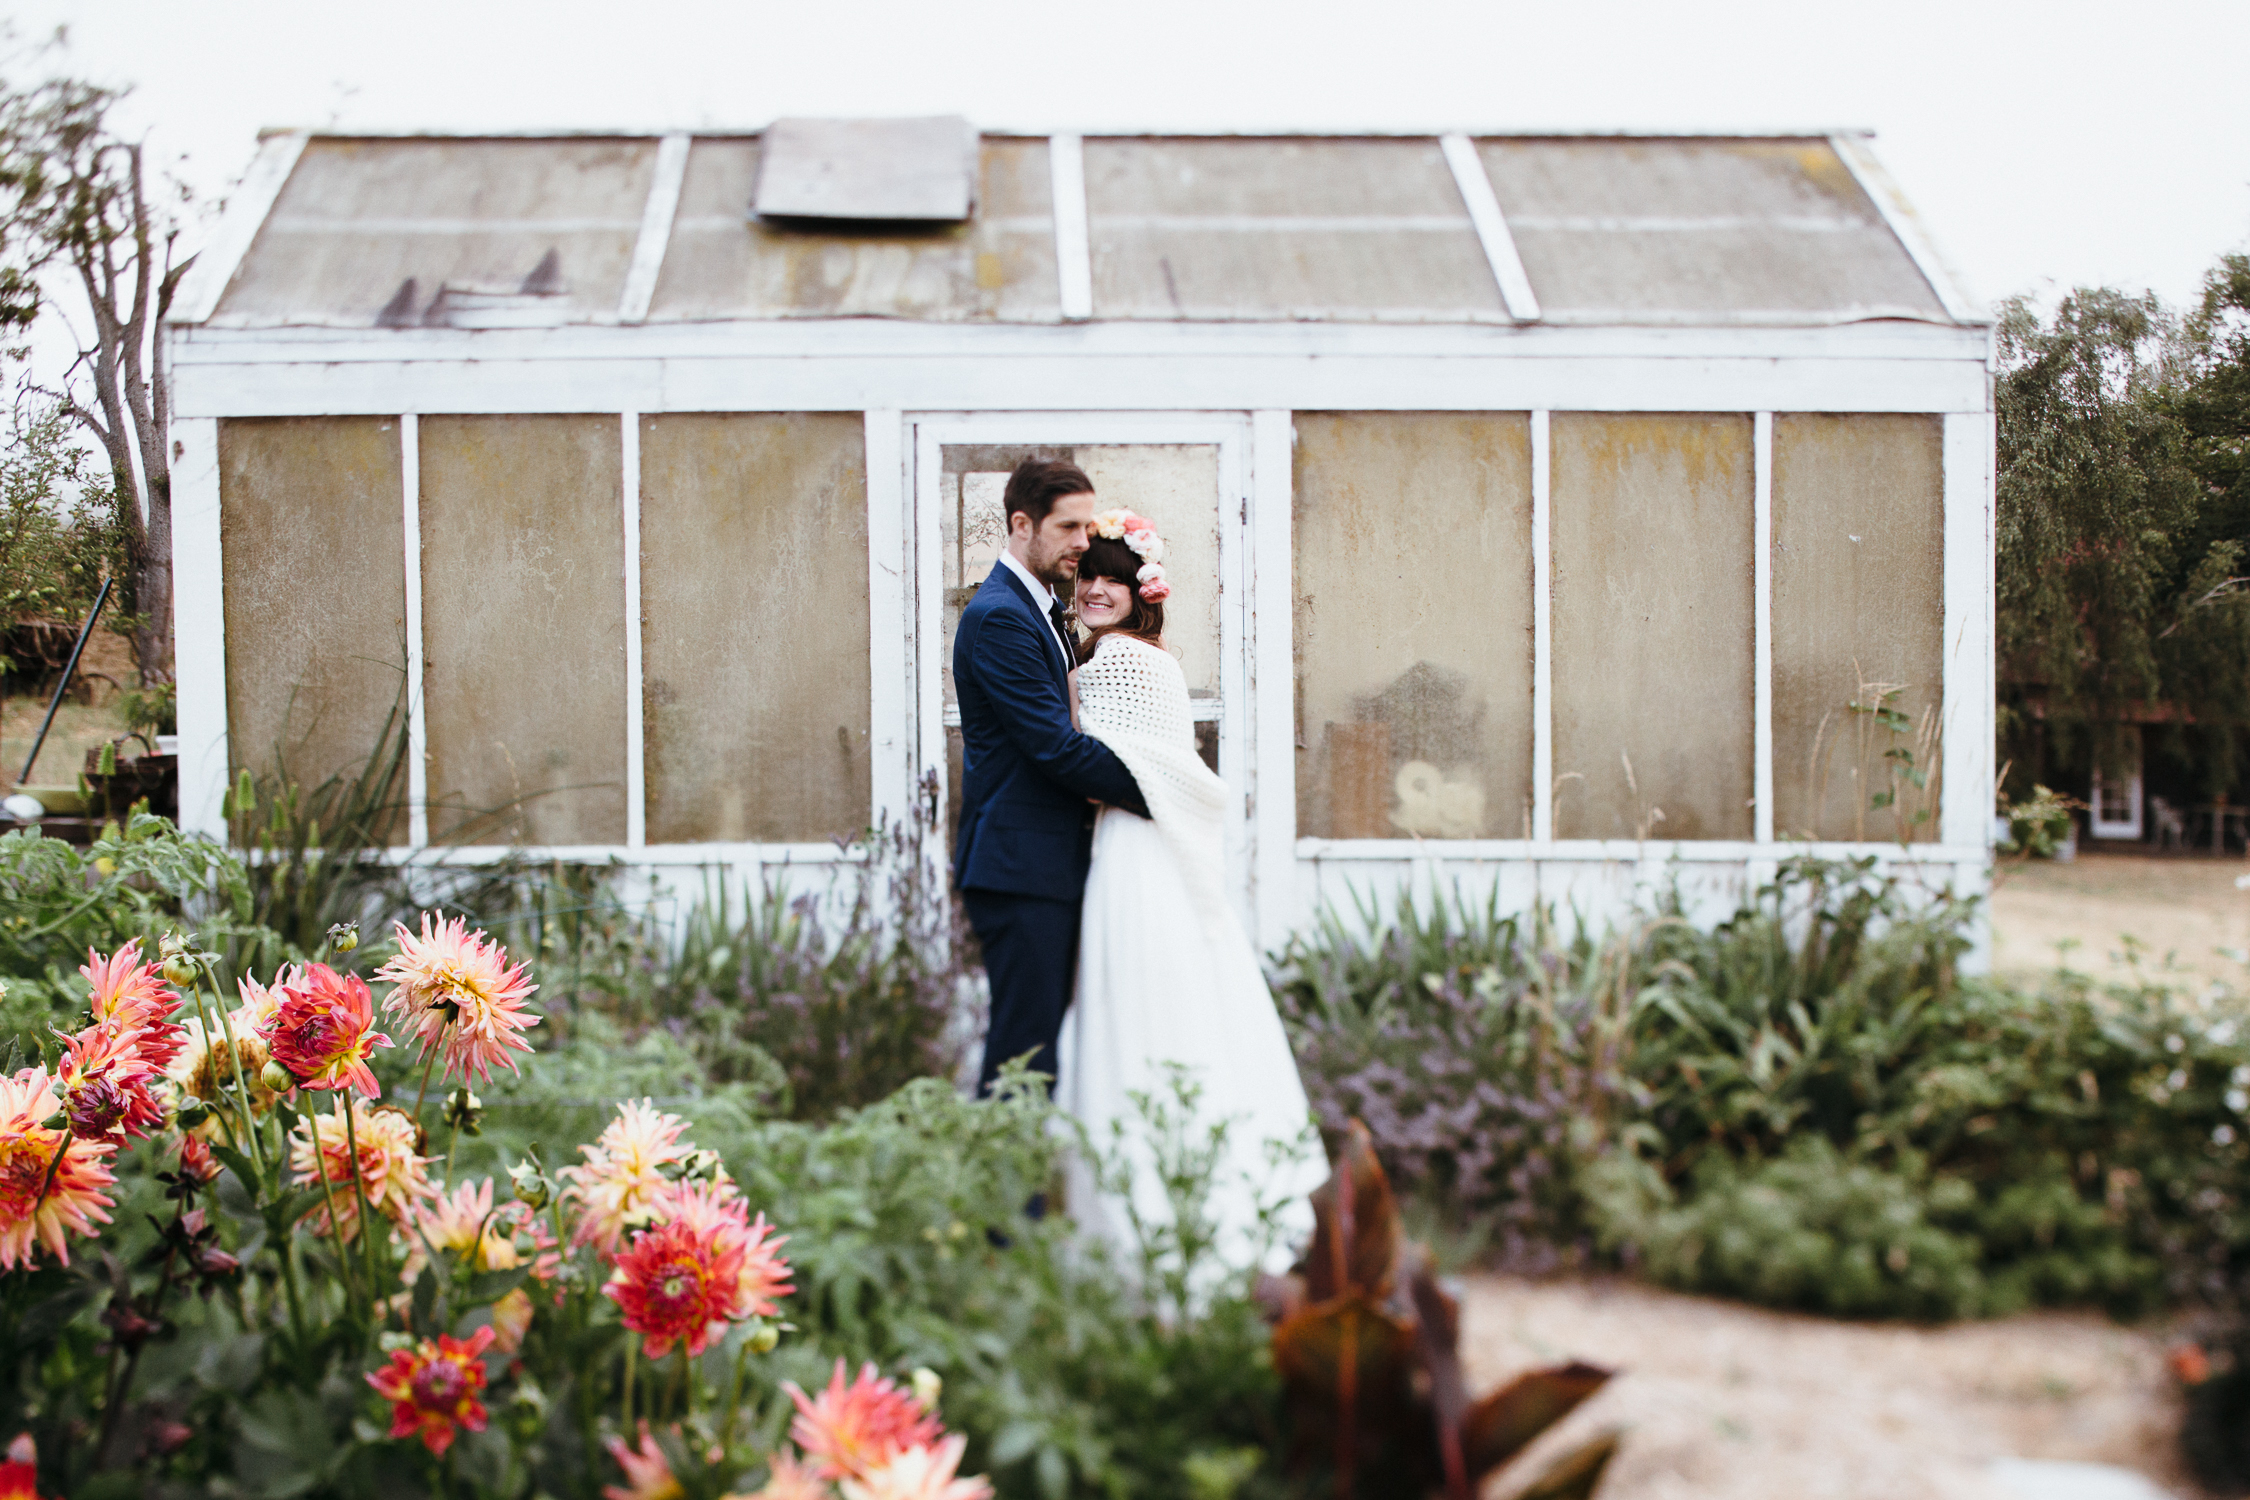 greenhouse photo by gretchen gause photography